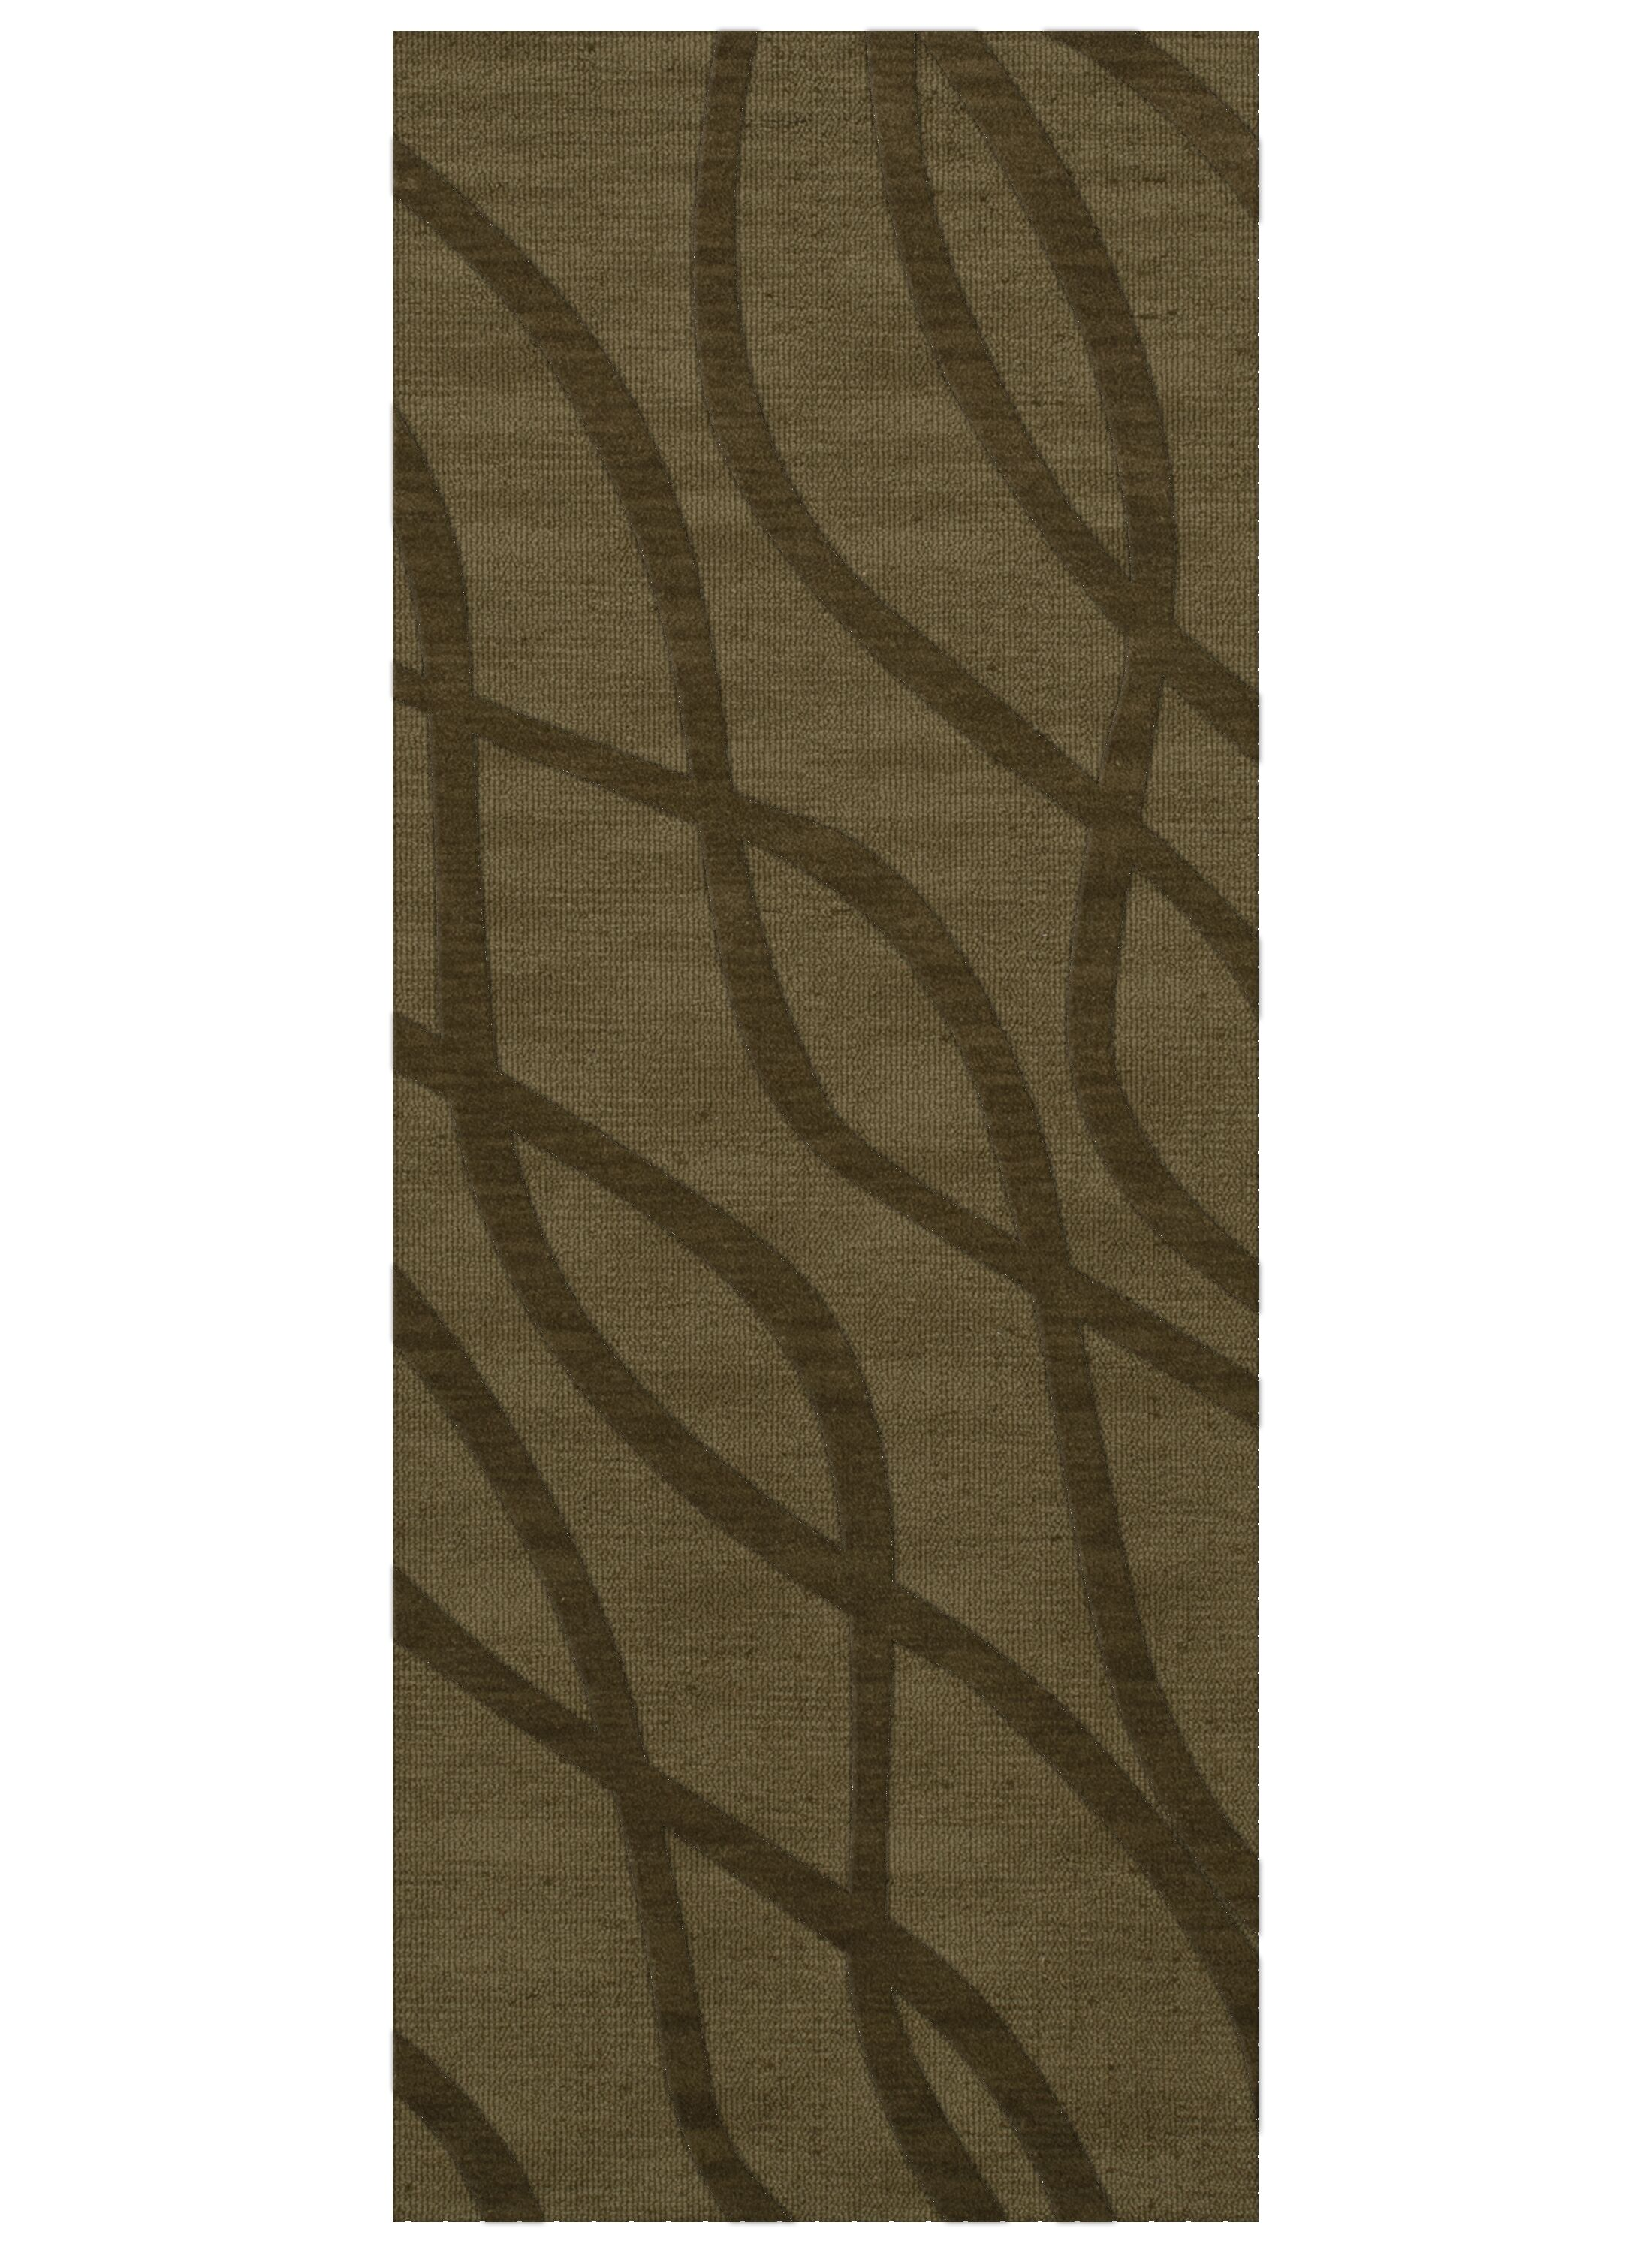 Dover Tufted Wool Leaf Area Rug Rug Size: Runner 2'6